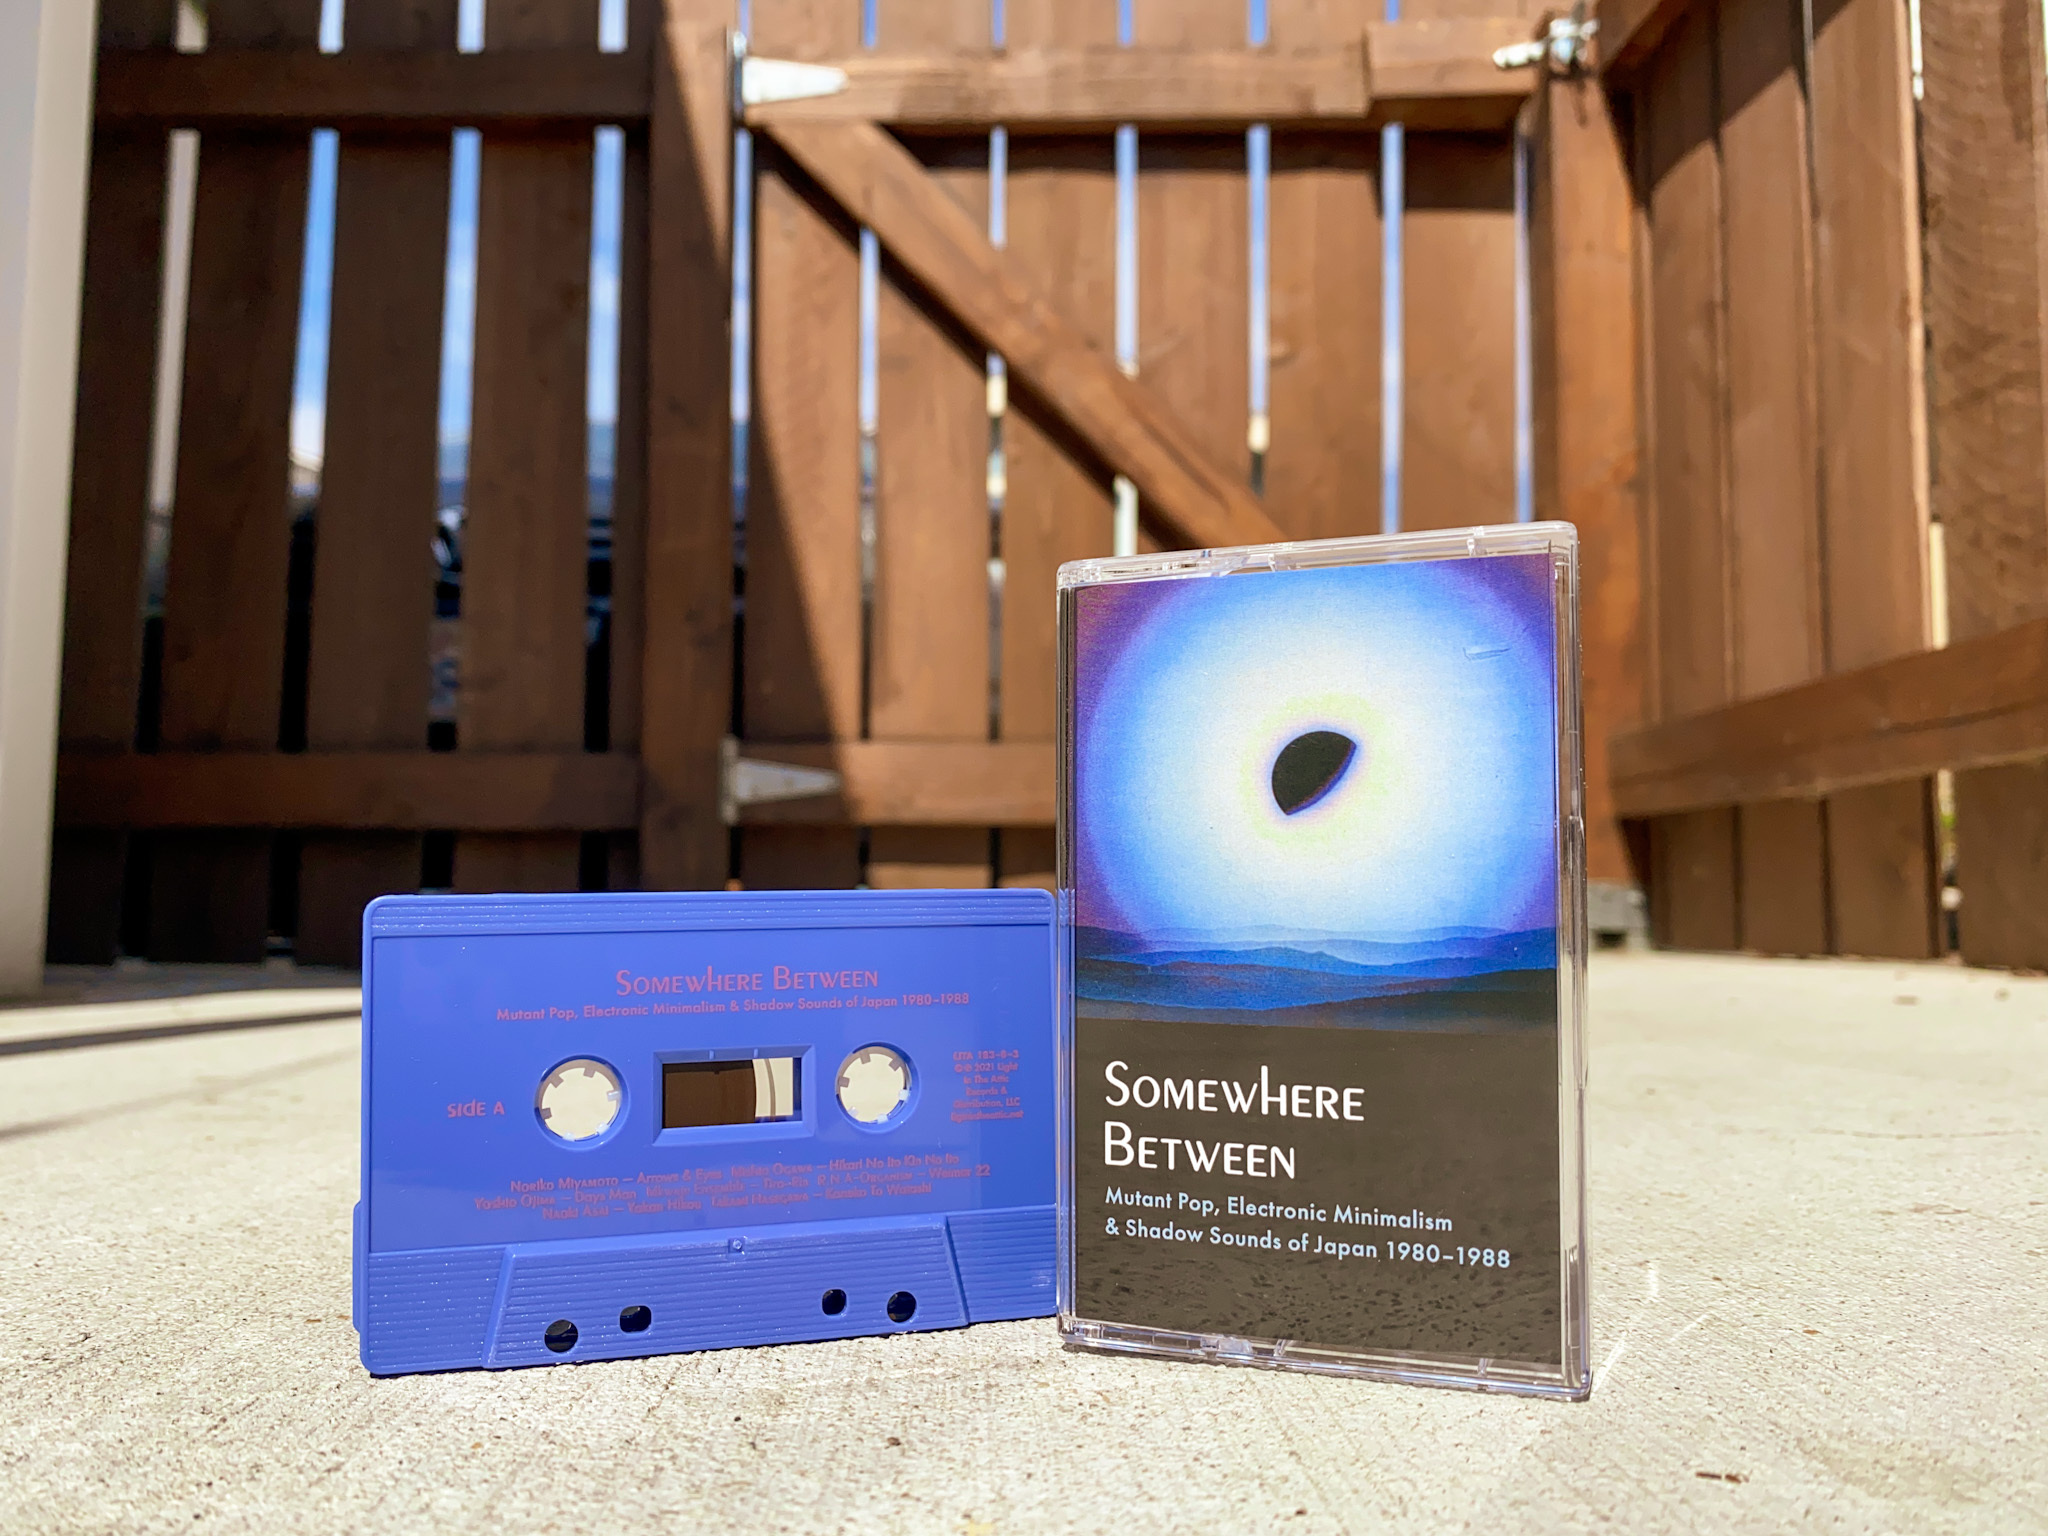 Somewhere Between: Mutant Pop, Electronic Minimalism & Shadow Sounds of Japan 1980-1988